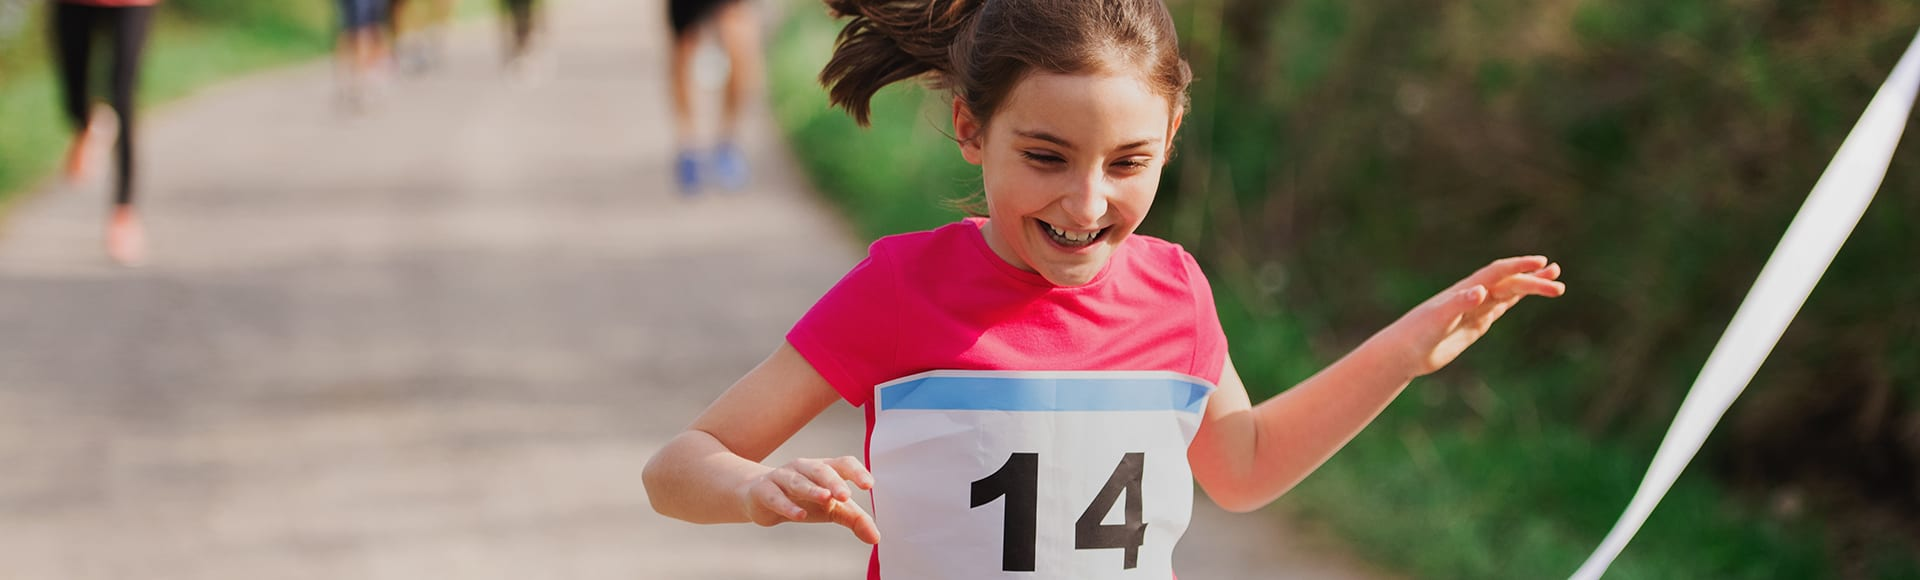 A small girl runner crossing finish line in a race competition in nature.